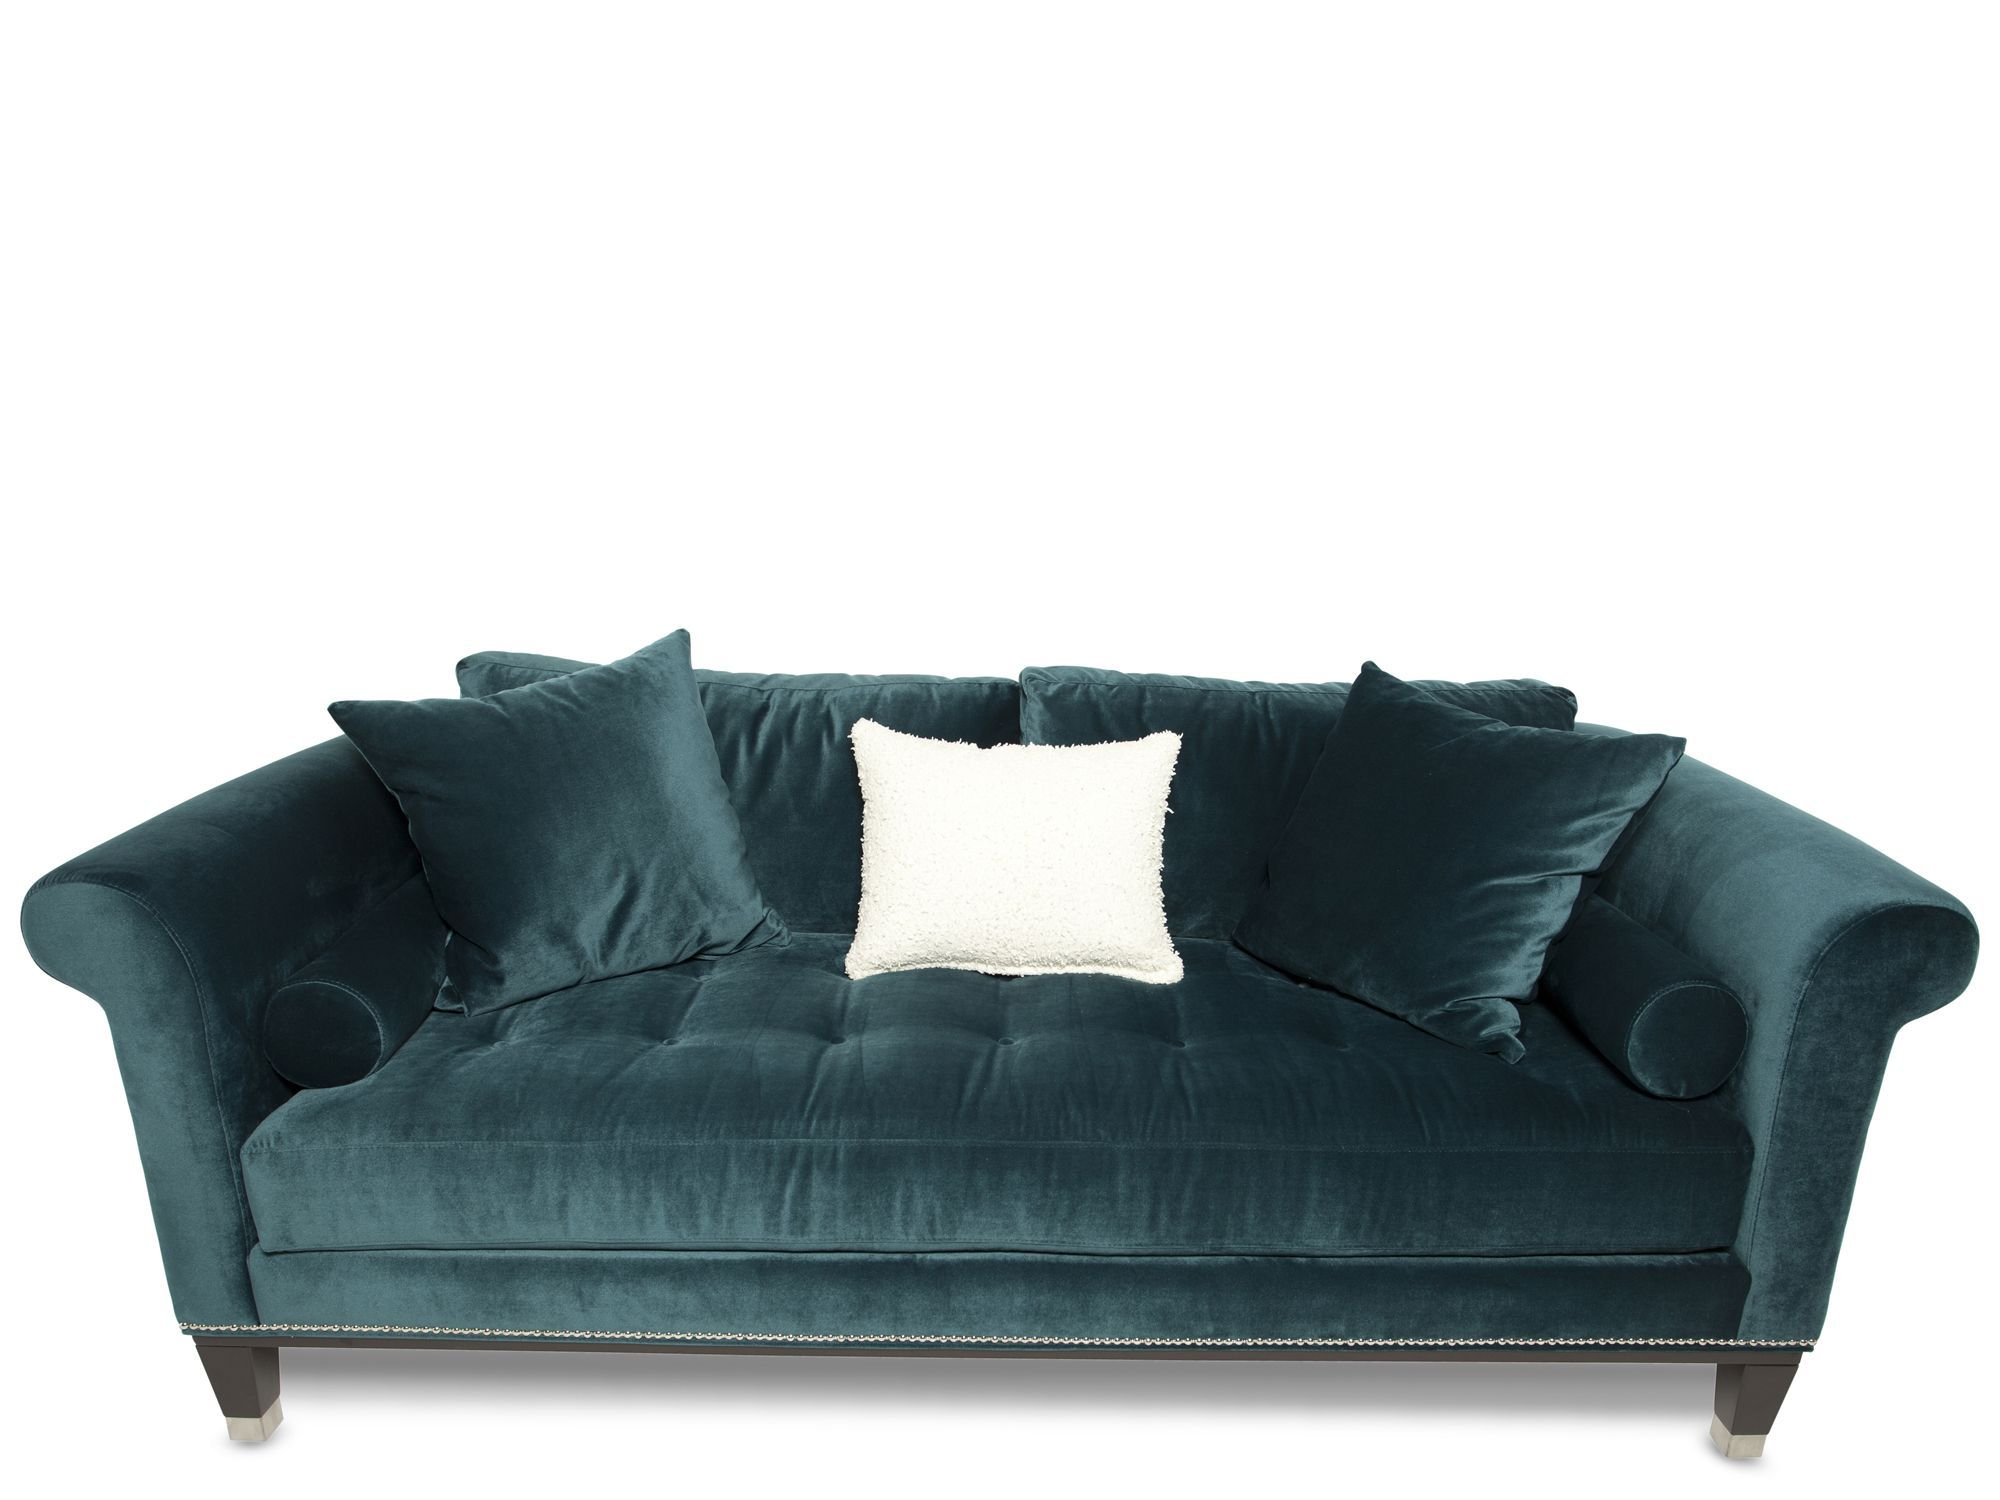 Jonathan Louis Turner Sofa Mystere Teal The random white